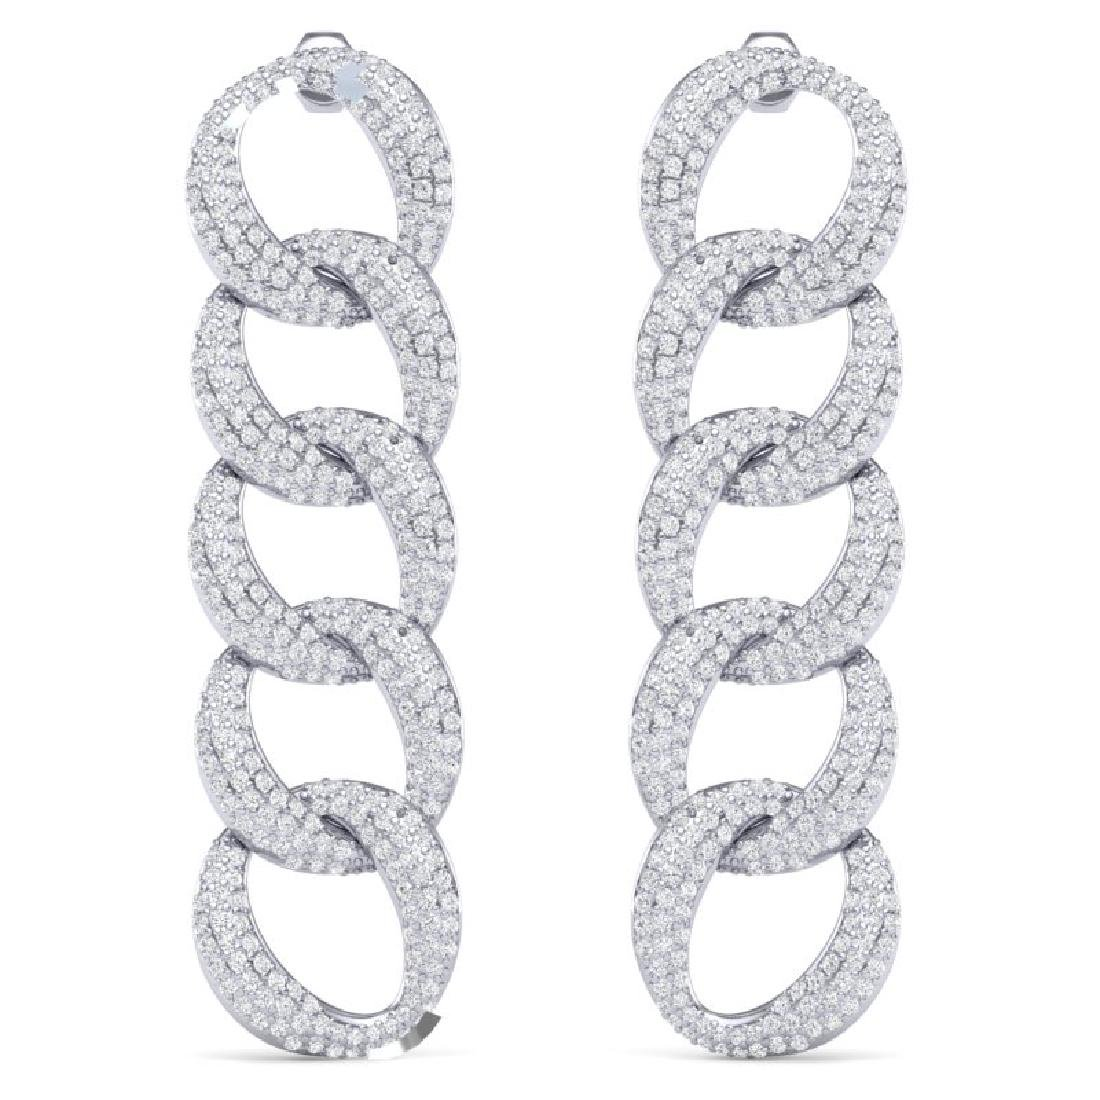 5 CTW Certified VS/SI Diamond Earrings 18K White Gold - 2